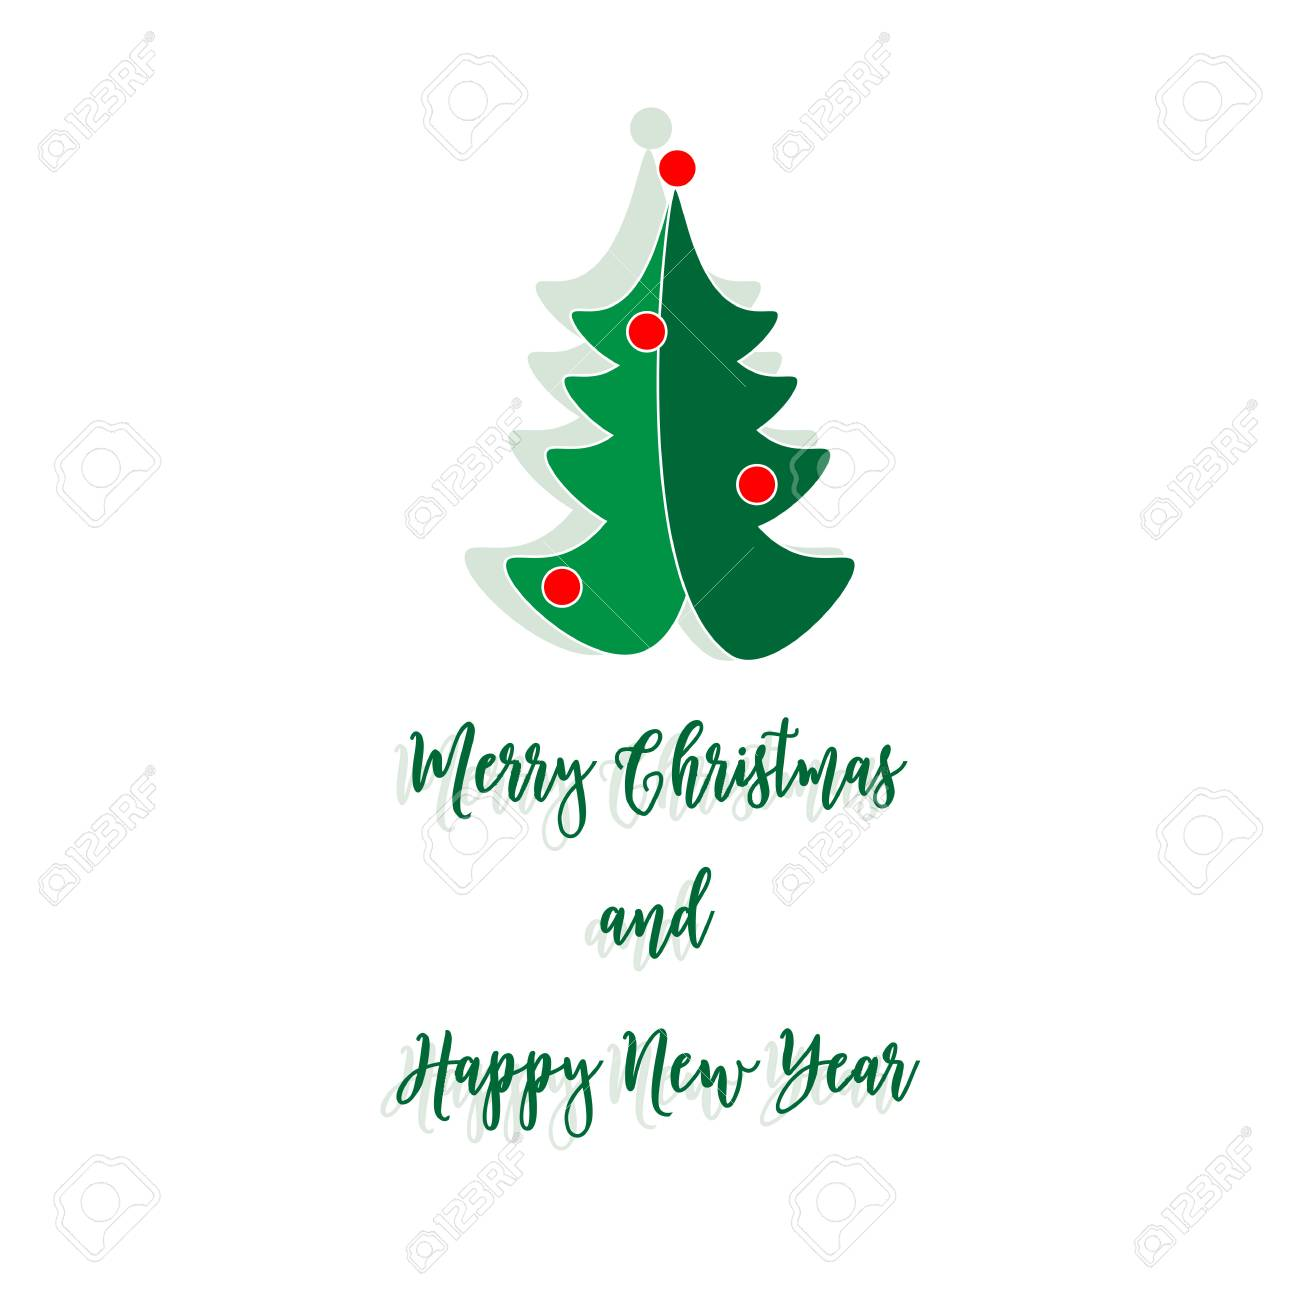 Merry Christmas Card With New Year Tree On The White Background